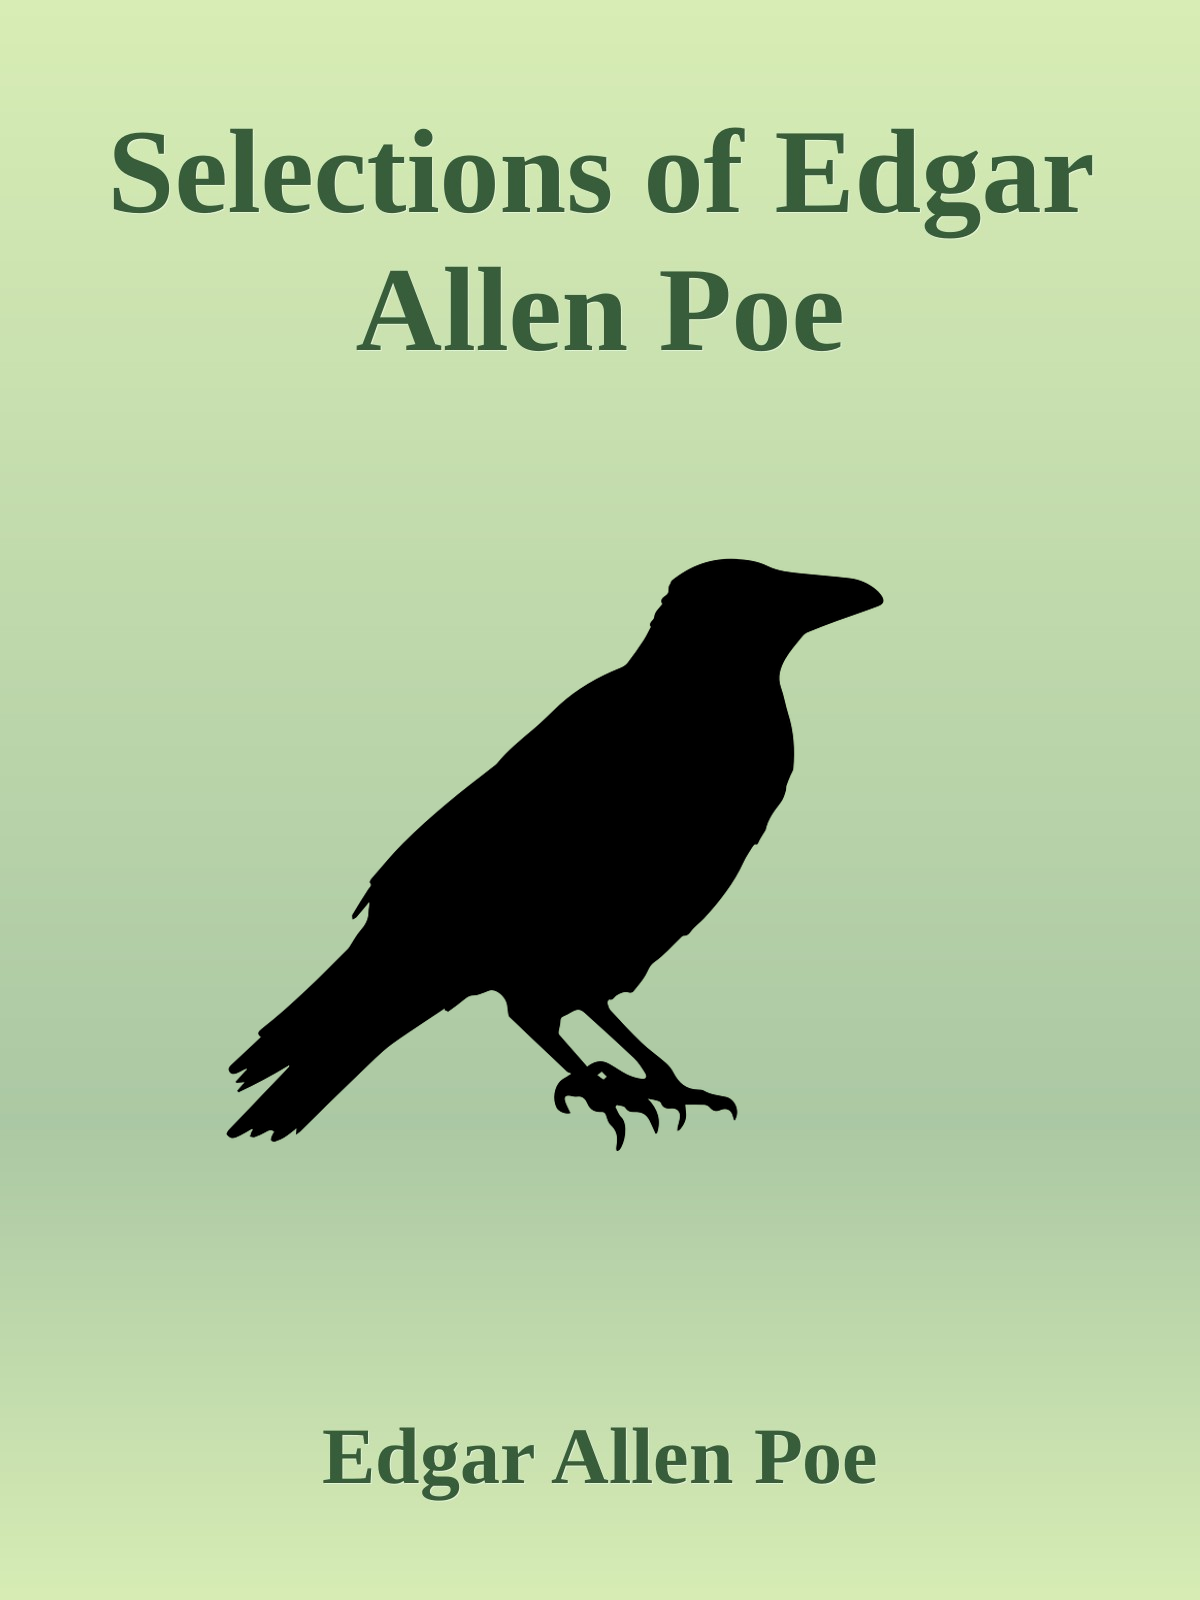 Selections of Edgar Allen Poe